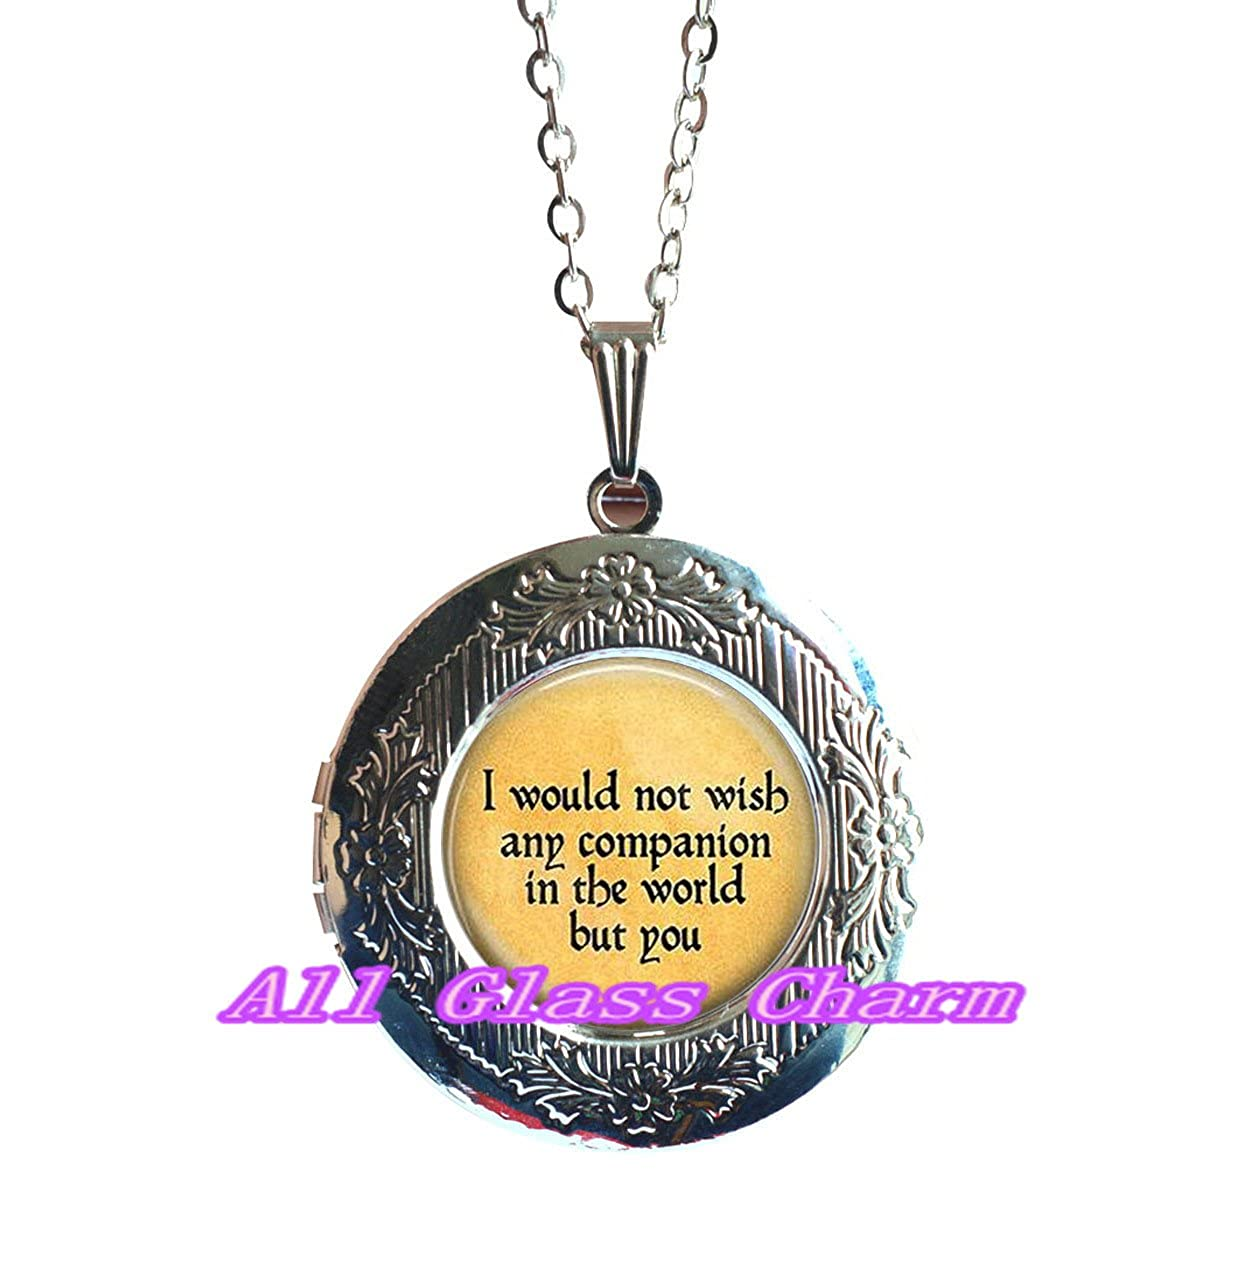 I Would Not Wish Any Companion in the World But You ,quote Locket Pendant,quote Locket Necklace,AS0230 Beautiful Locket Necklace,Love Quote Locket Necklace Locket Pendant